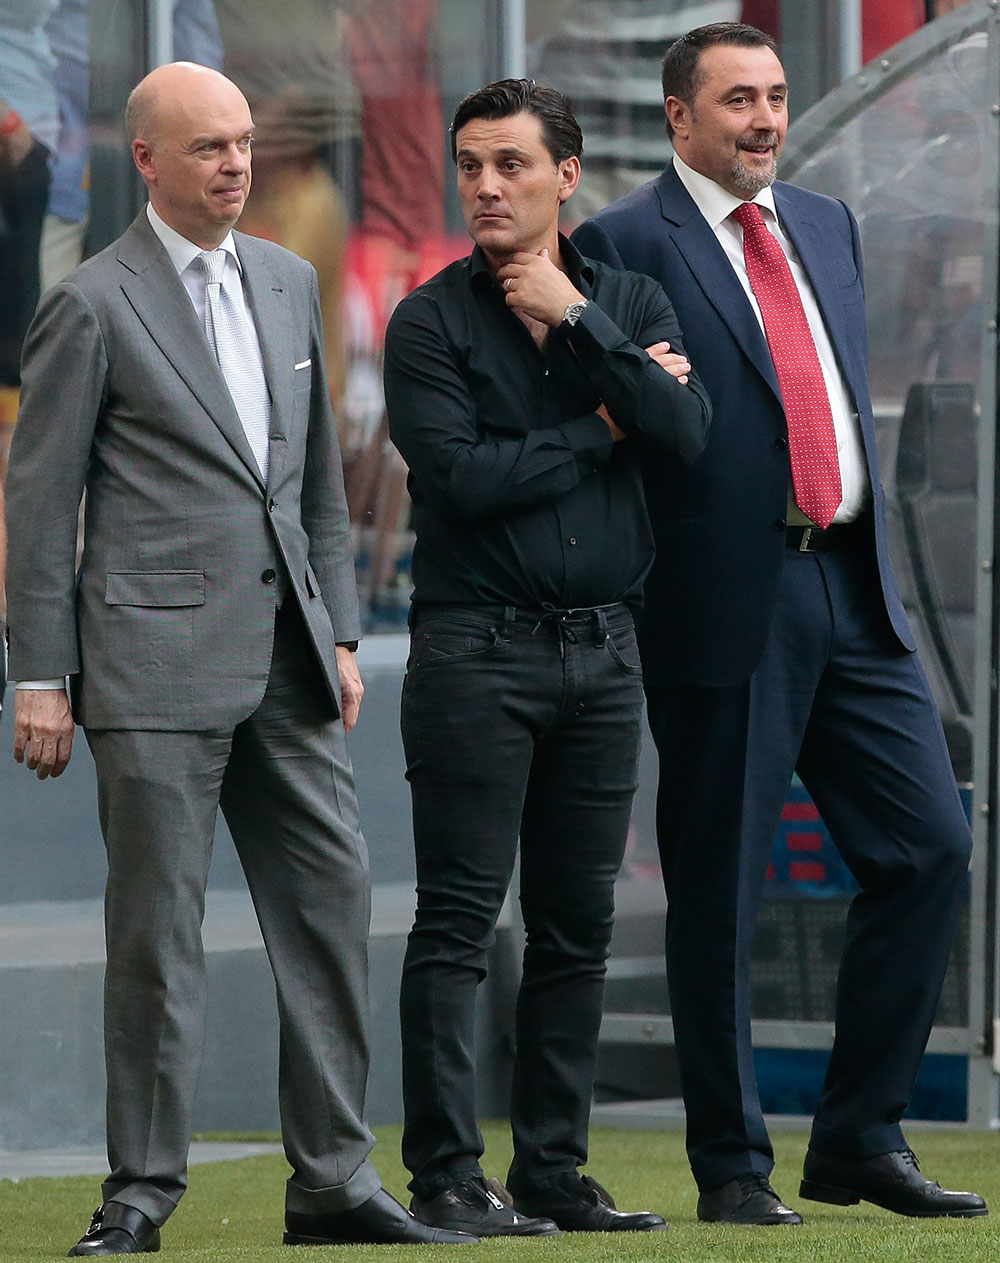 Marco Fassone, Vincenzo Montella and Massimiliano Mirabelli before Milan-Craiova at Stadio San Siro on the 3rd of August, 2017. (Photo by Emilio Andreoli/Getty Images)